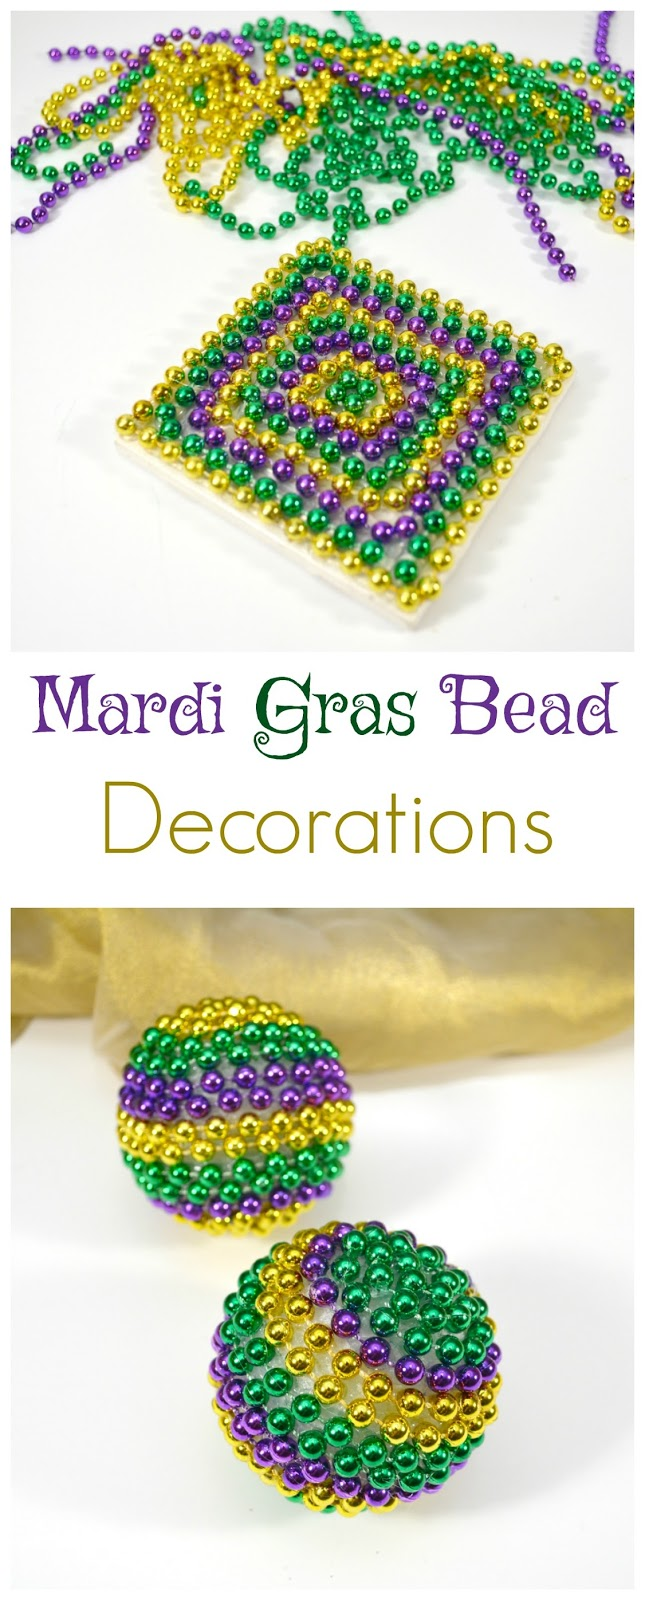 Life With 4 Boys Diy Mardi Gras Bead Decorations